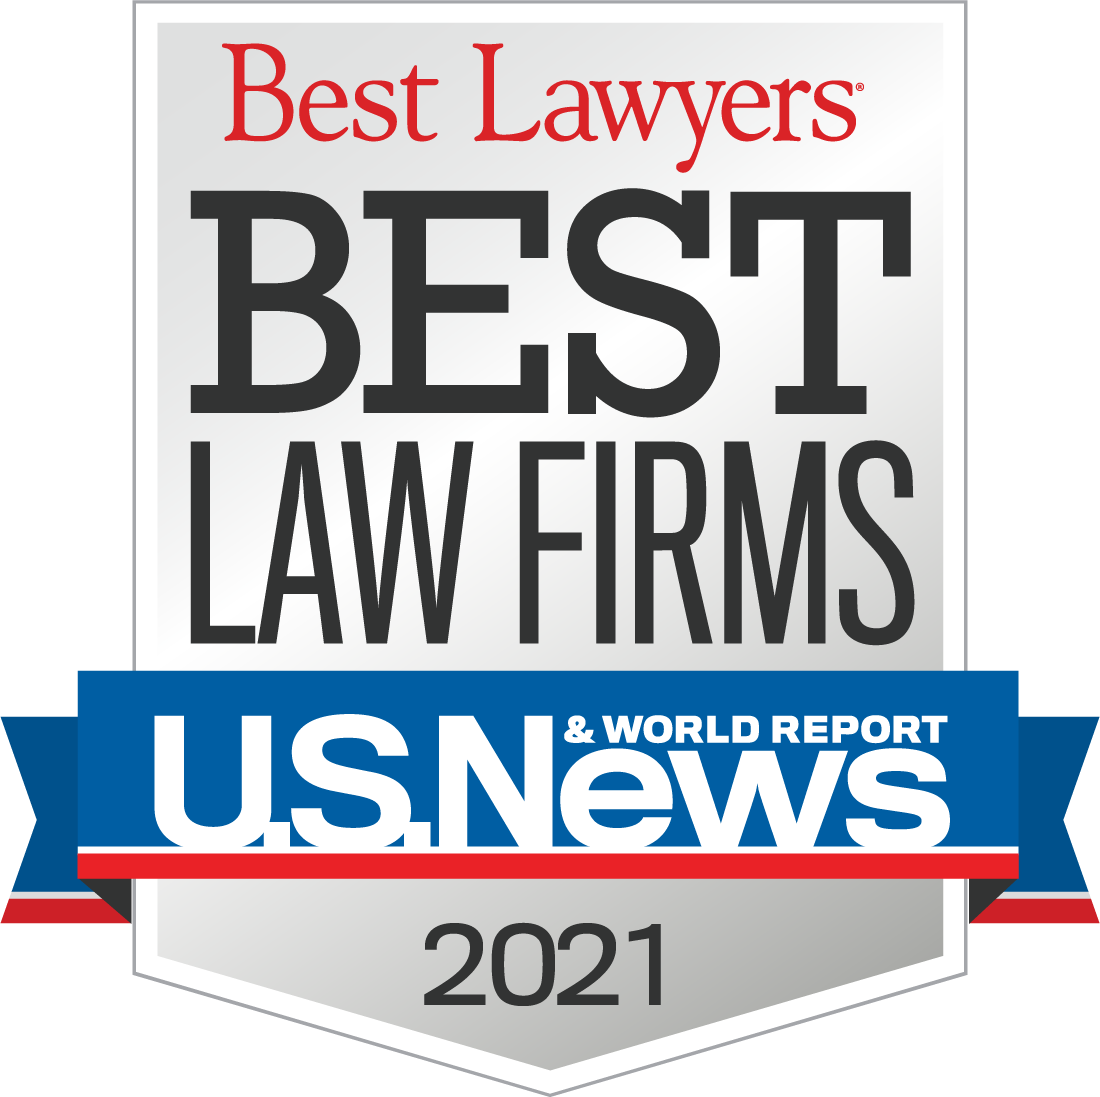 Best Lawyers US News and World Report